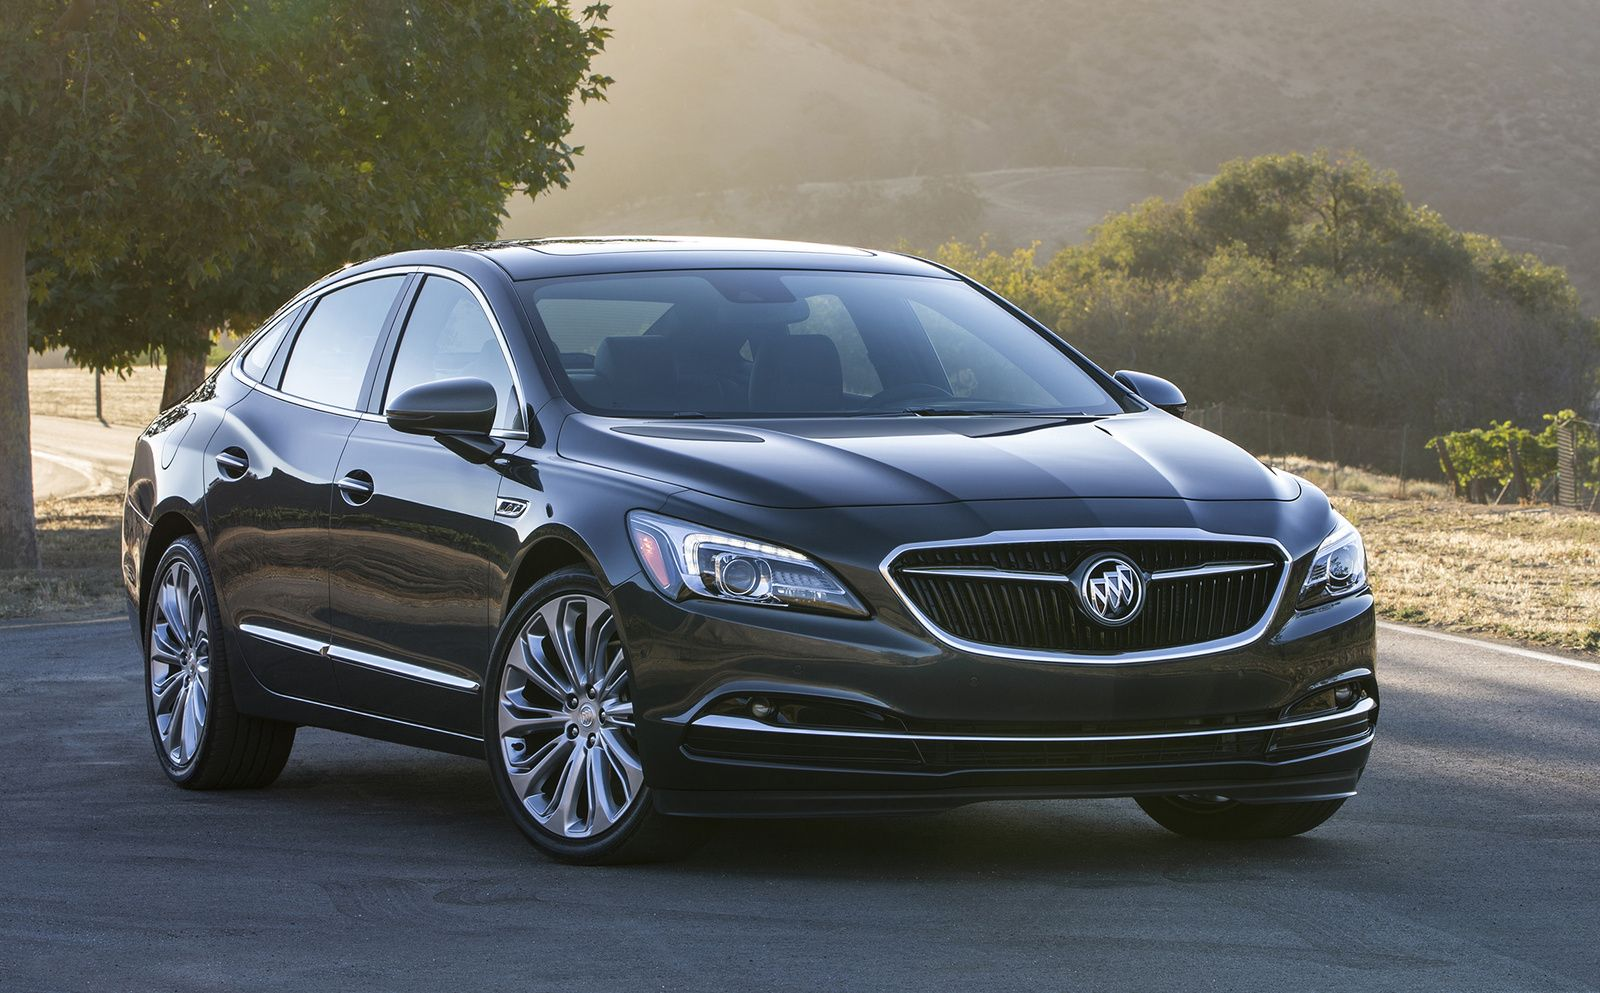 2016 2017 Buick Lacrosse For Sale In Your Area Cargurus Buick Lacrosse 2017 Buick Lacrosse Buick